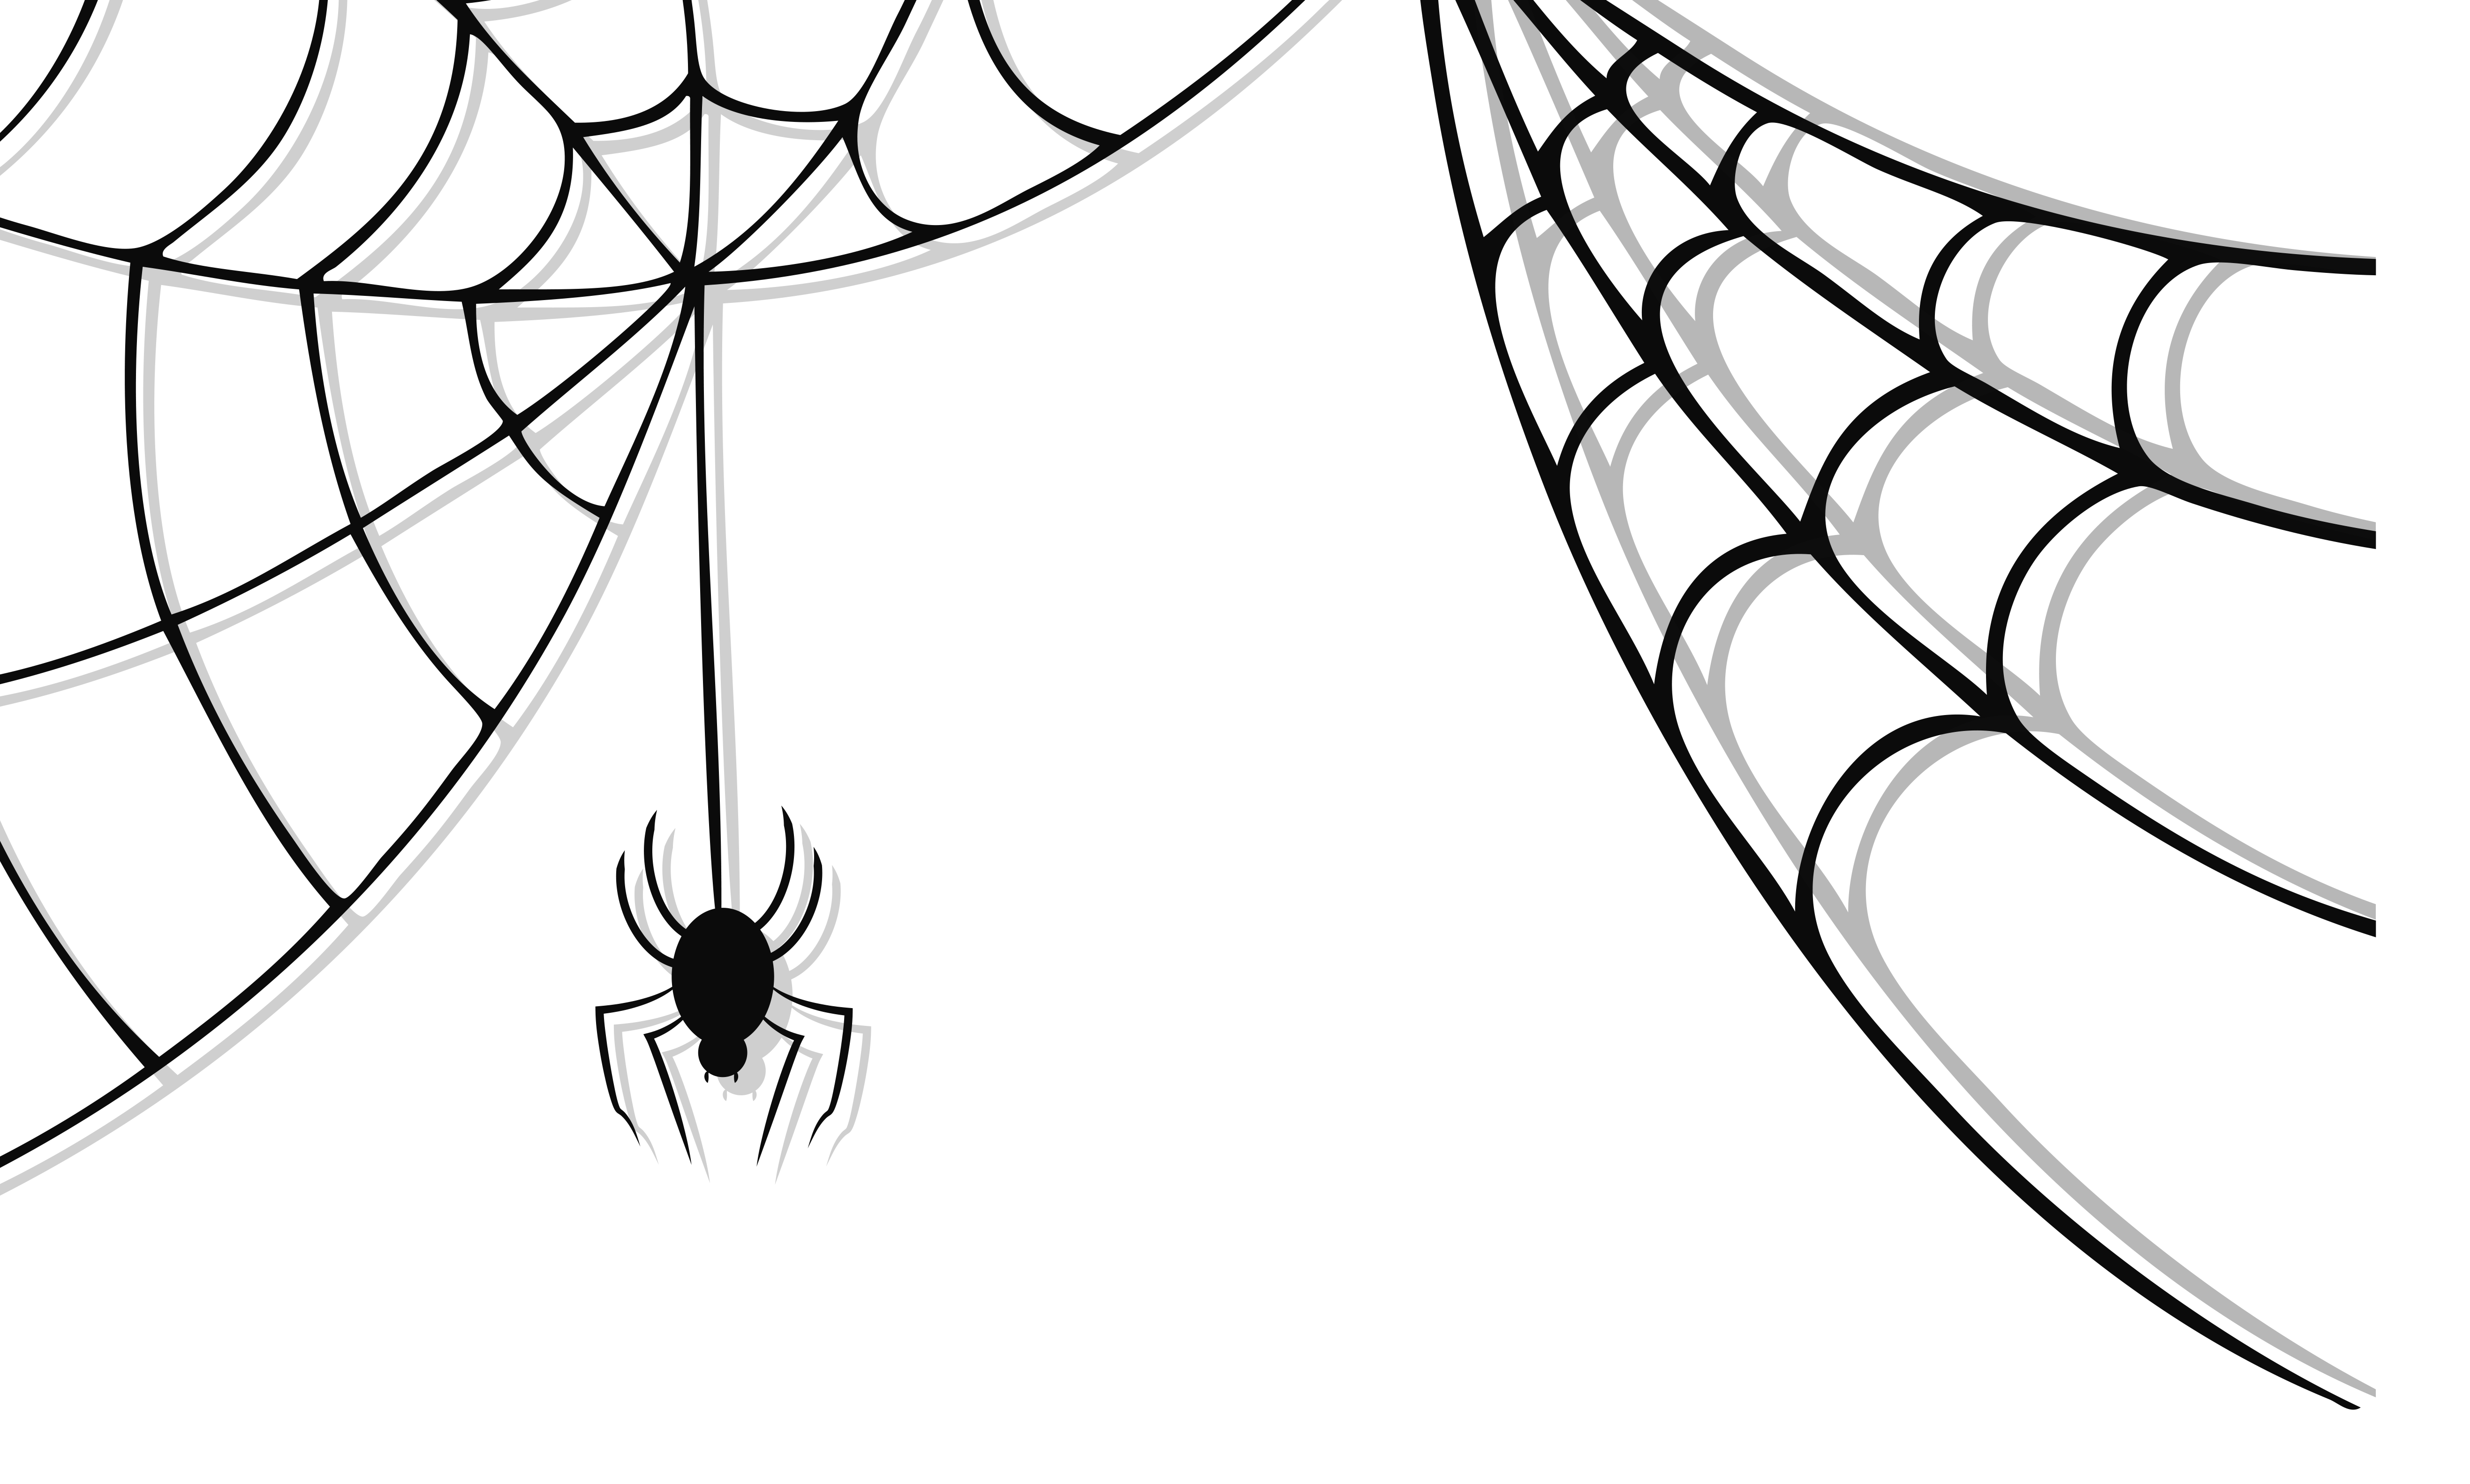 Spider web png transparent background. Haunted and clipart gallery